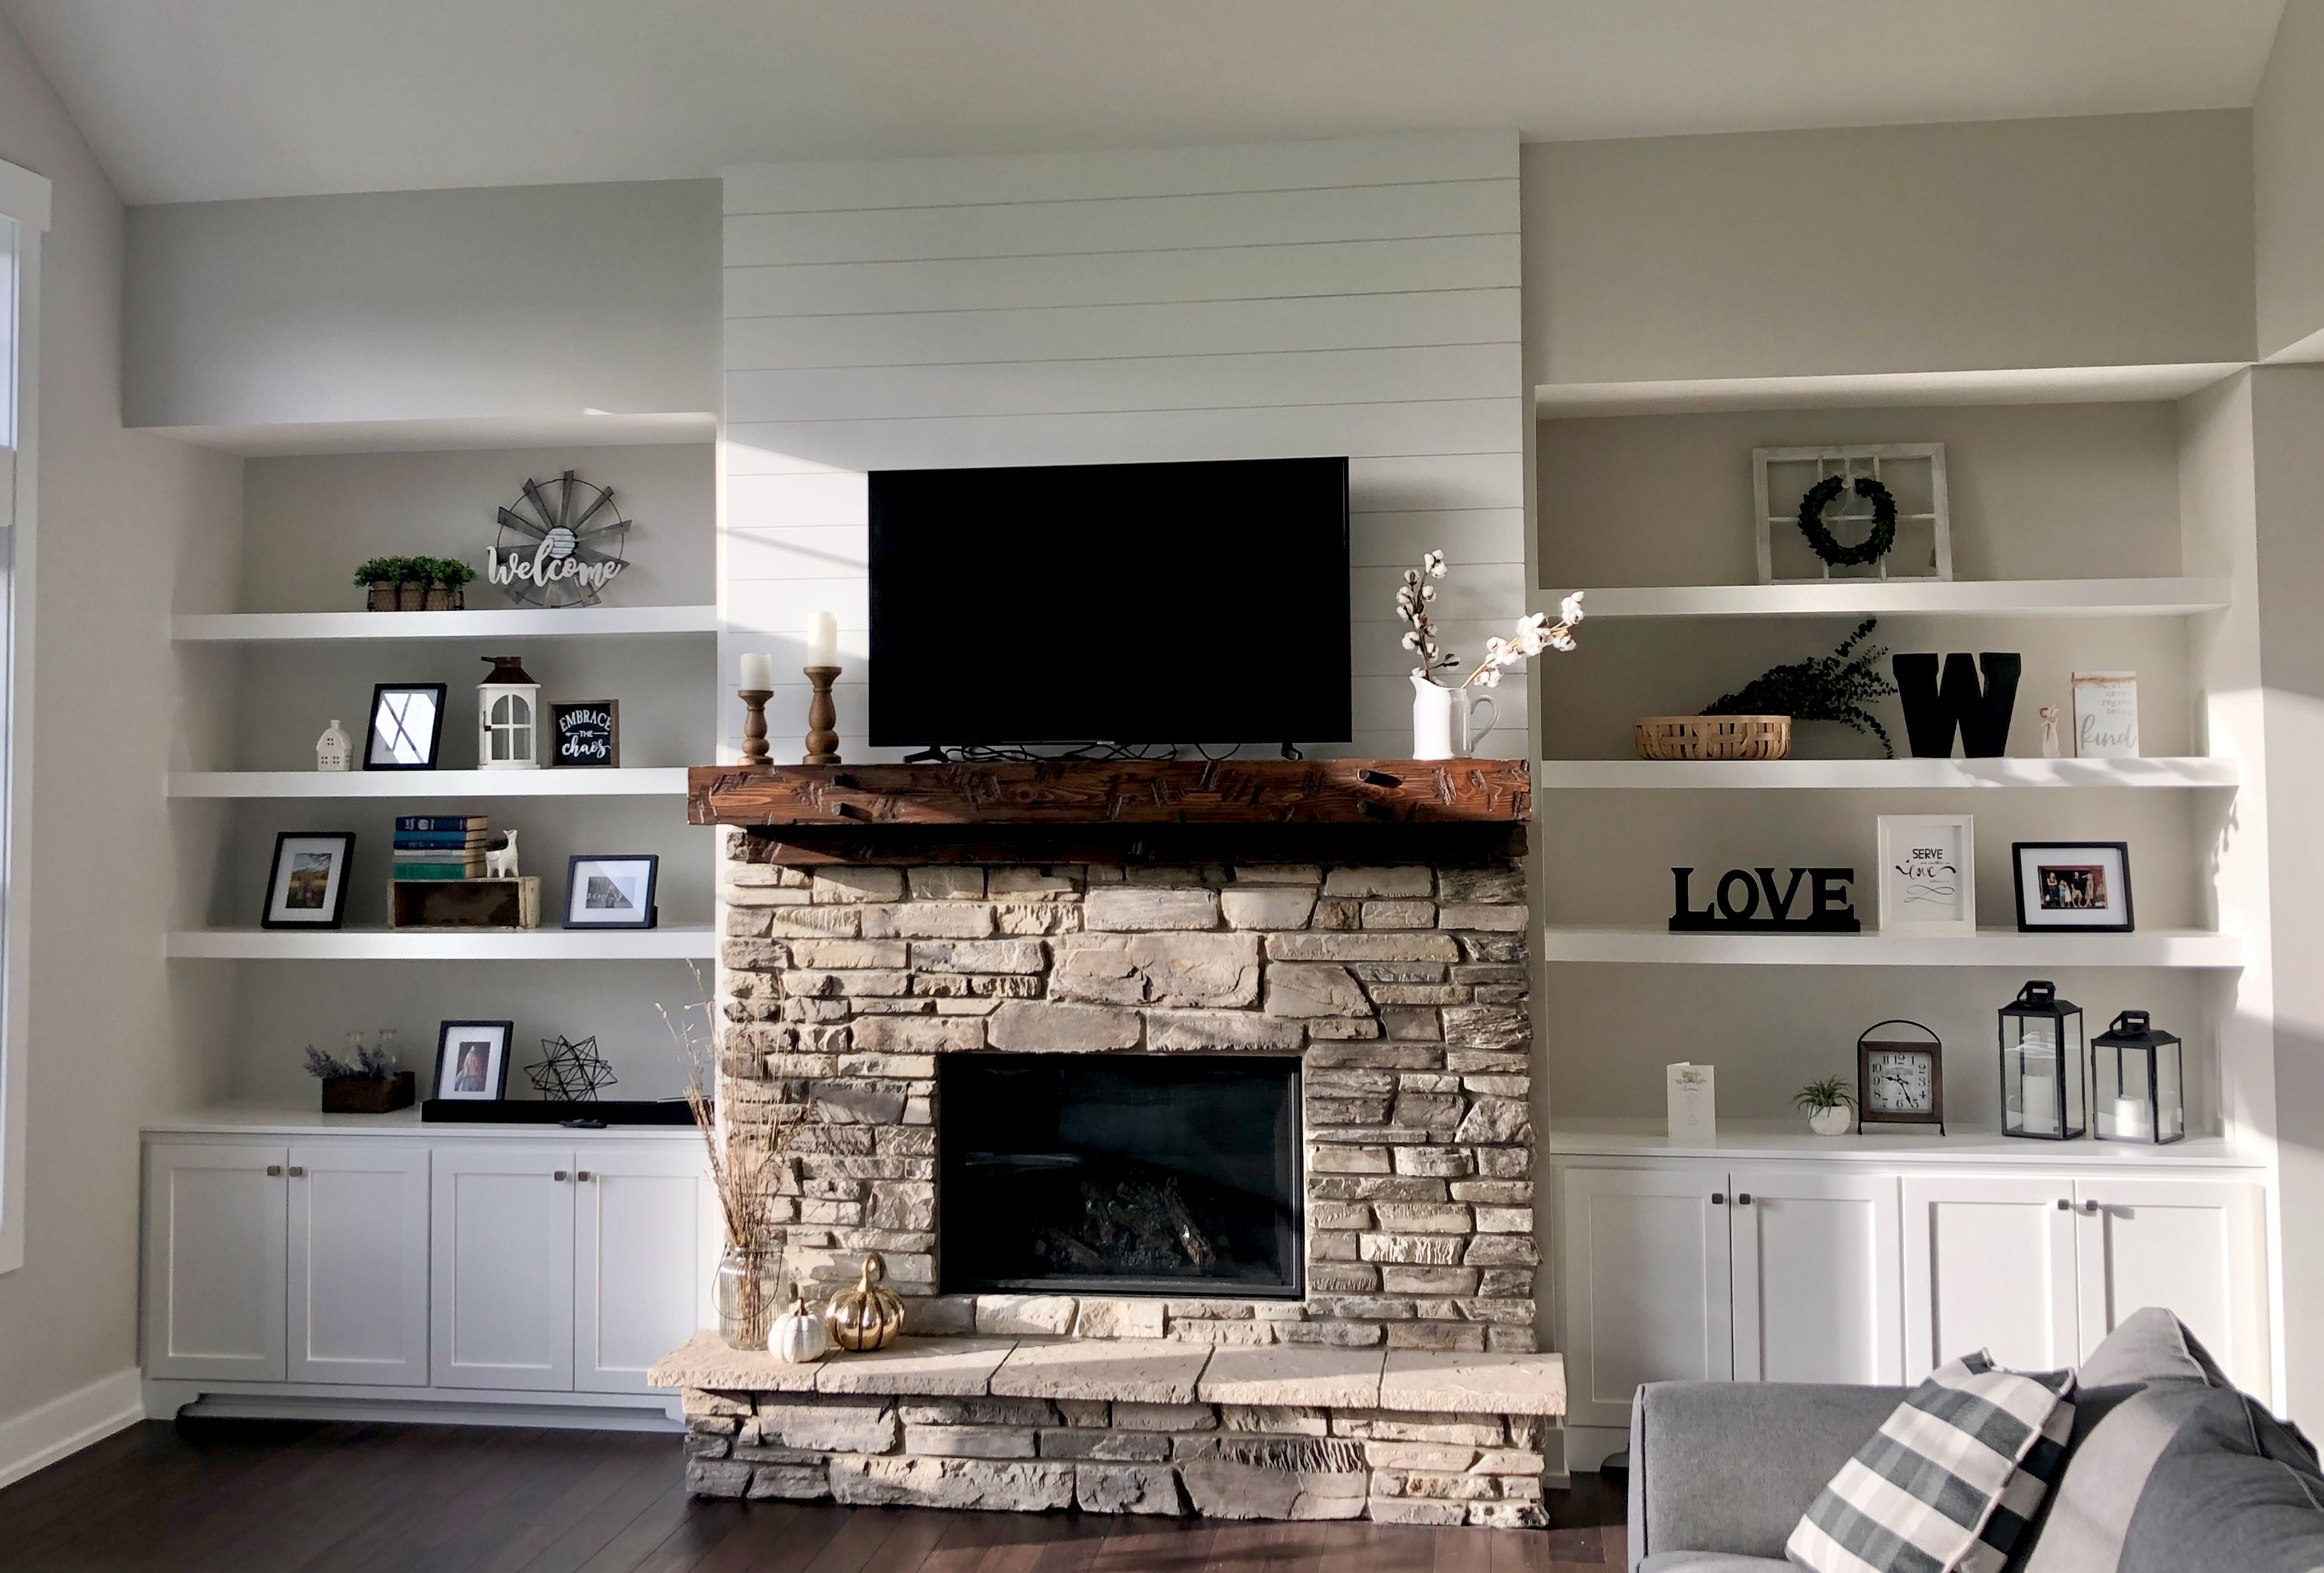 Built In Cabinets Built In Shelves Living Room Living Room Built Ins Fireplace Built Ins